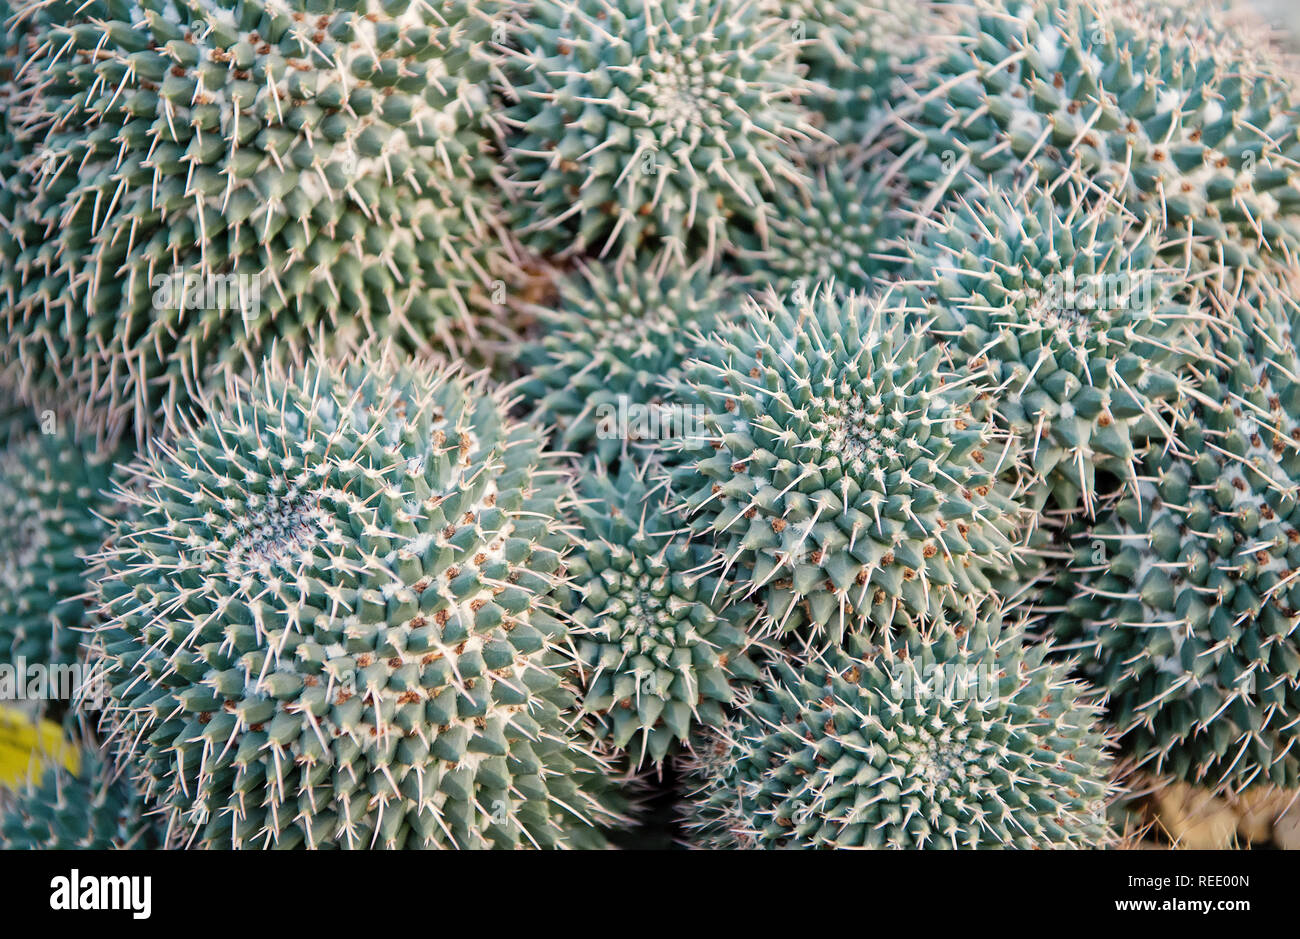 Cactus Flower Of Big Green Plant With Spiky Thorns As Natural